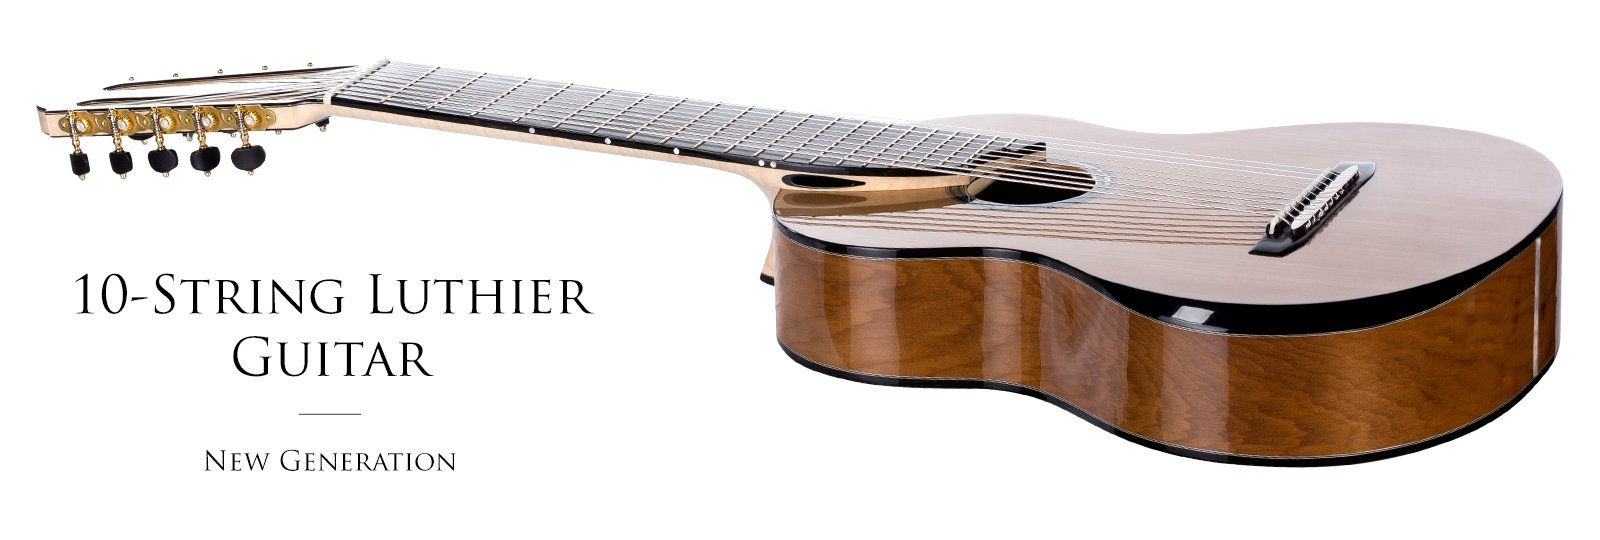 Luthier handmade 10-string classical guitar